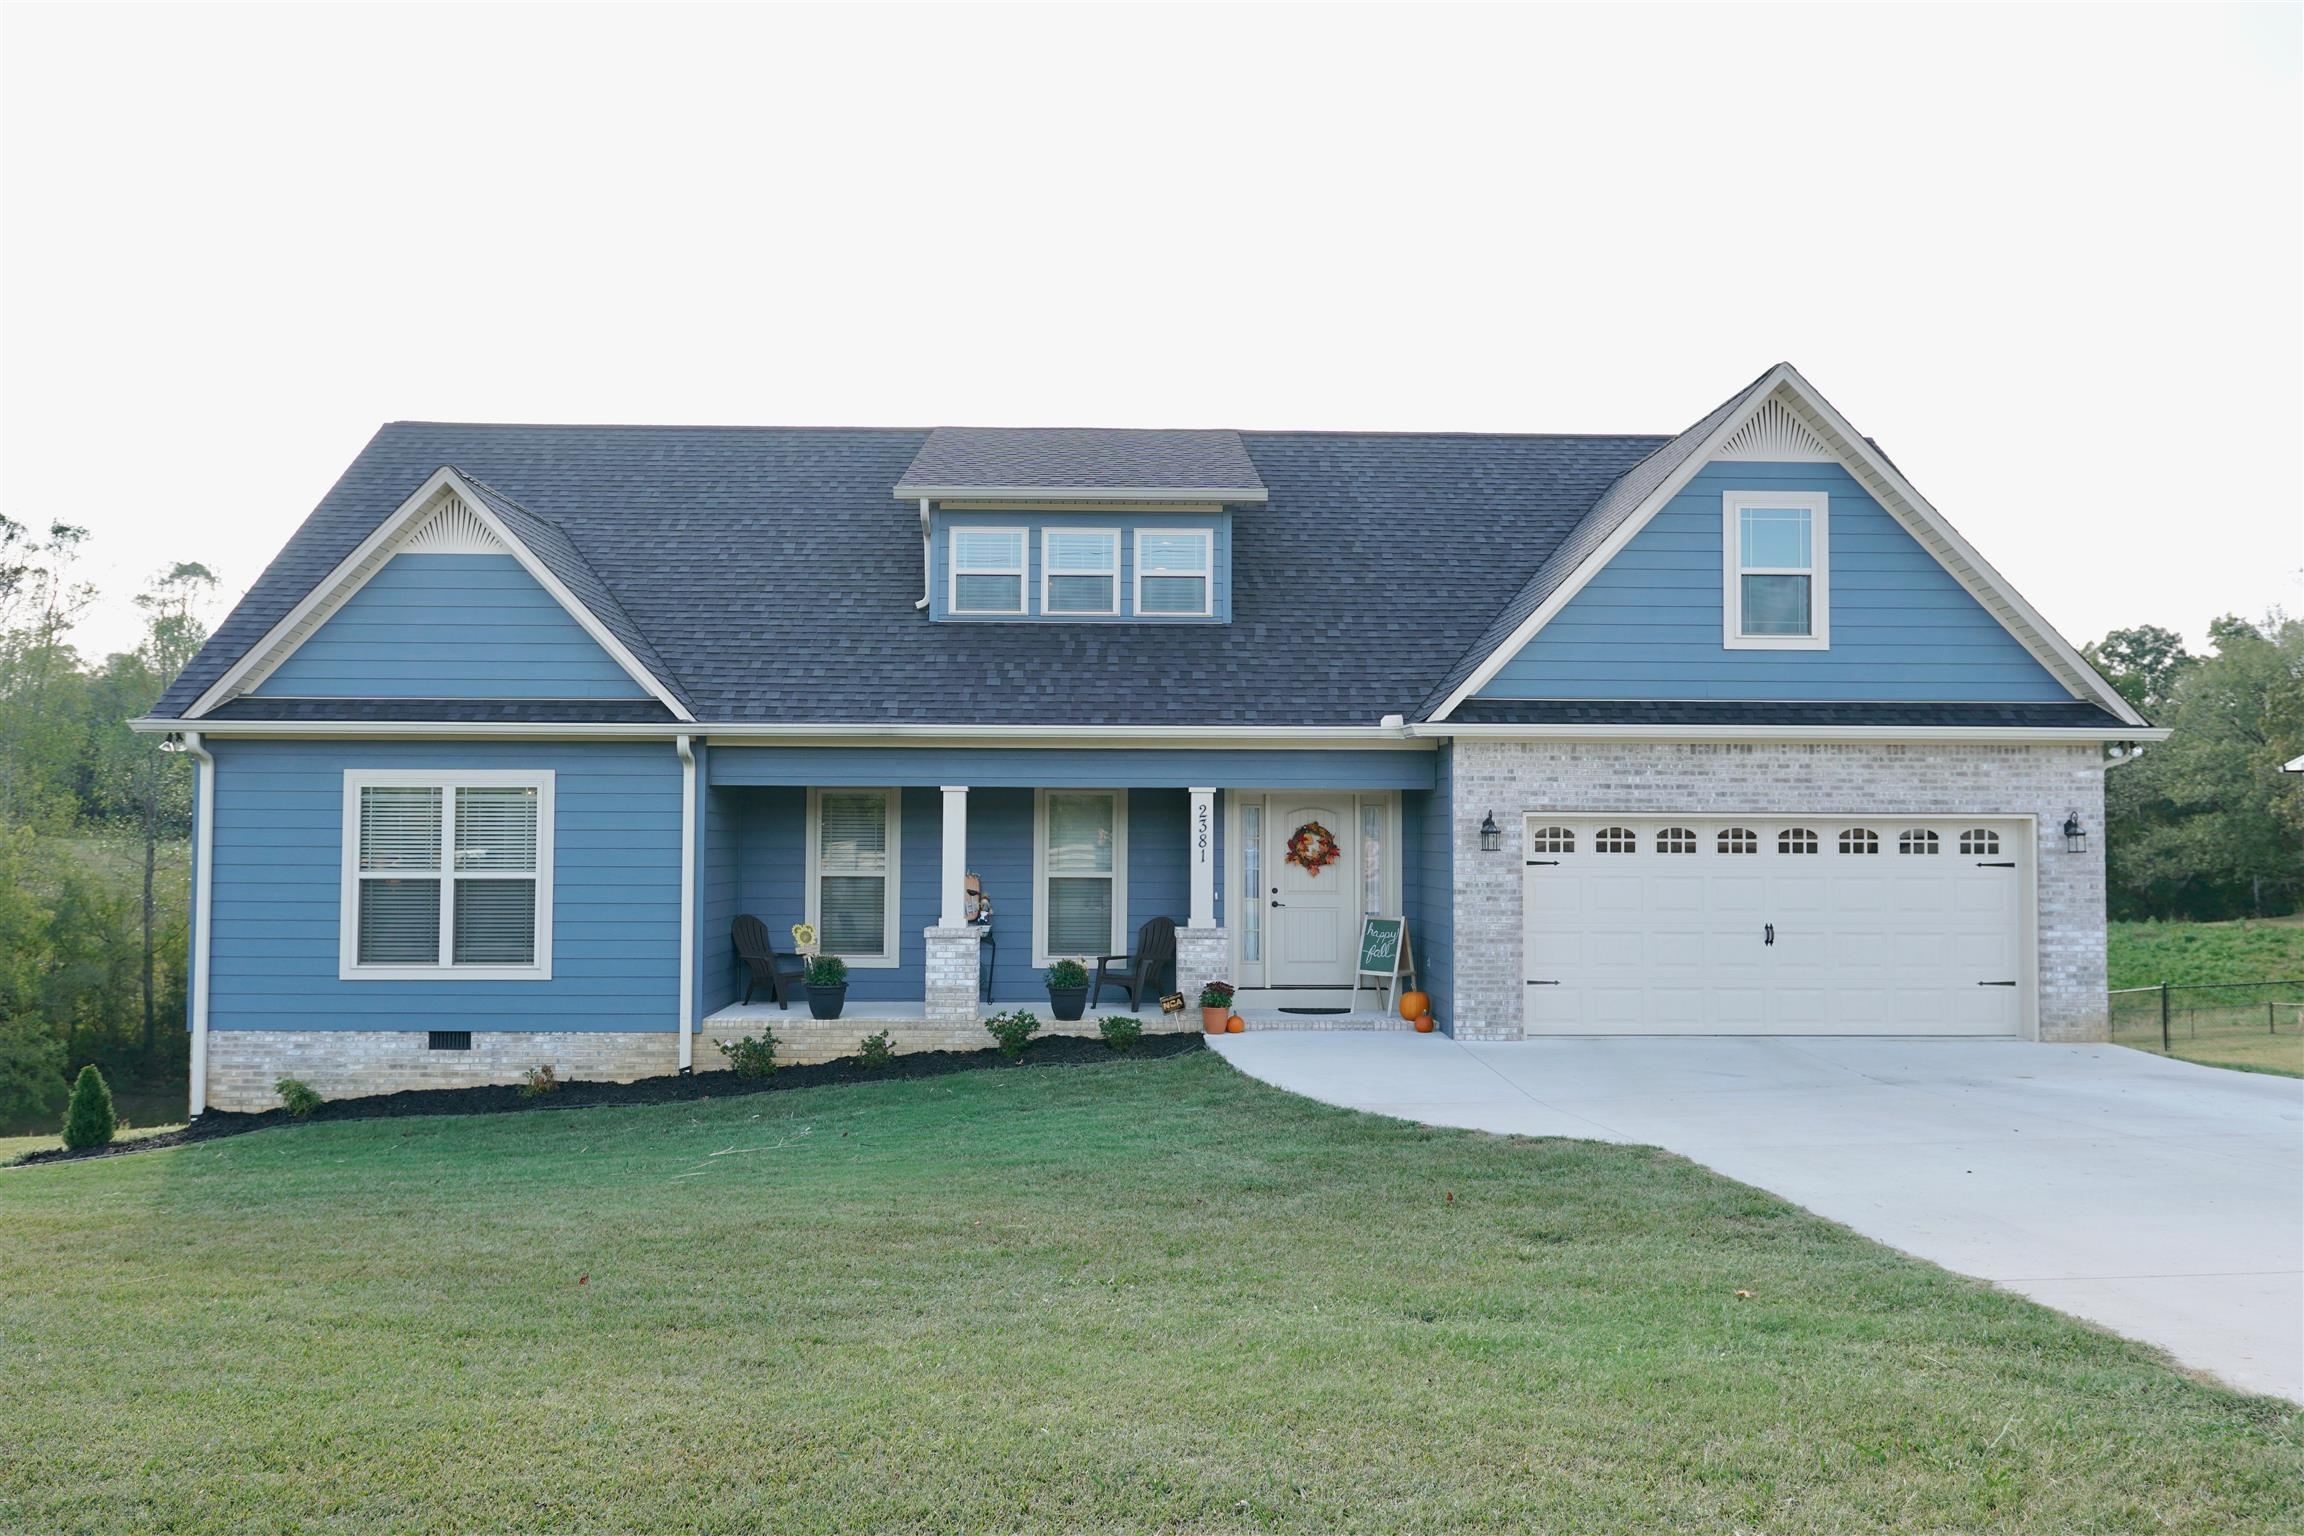 2381 Boyd Farris Rd, Cookeville, TN 38506 - Cookeville, TN real estate listing